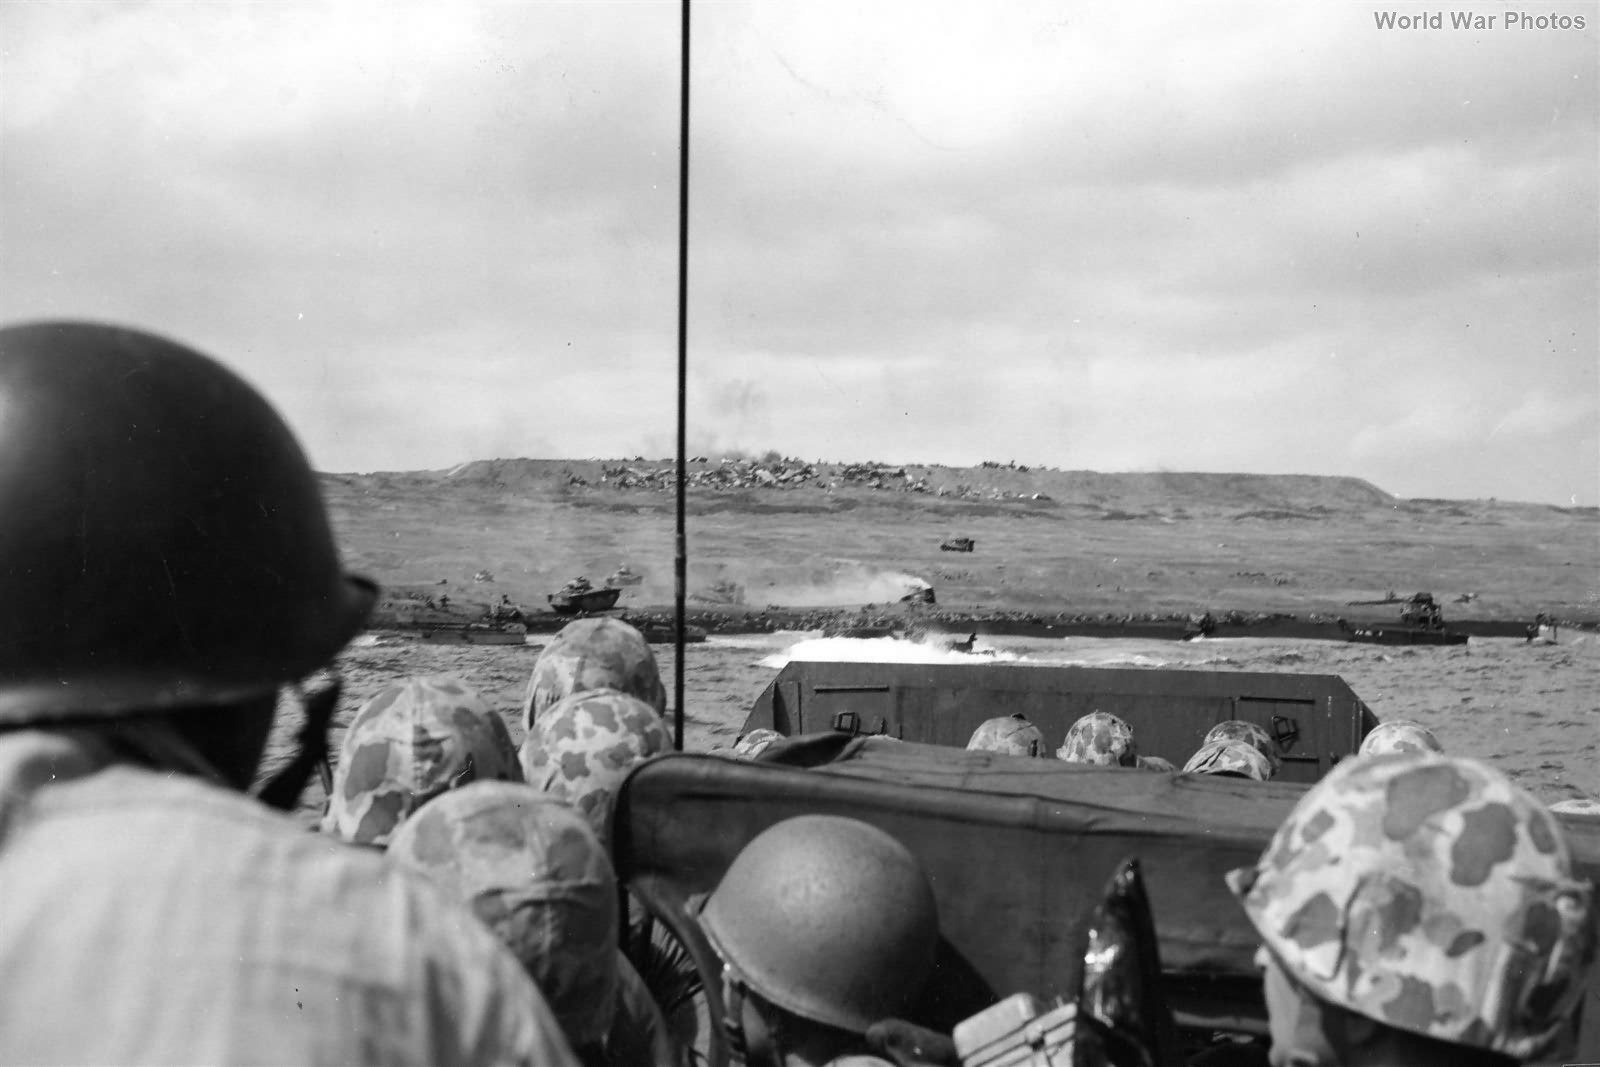 Group of 4th Division Marines in an LCVP